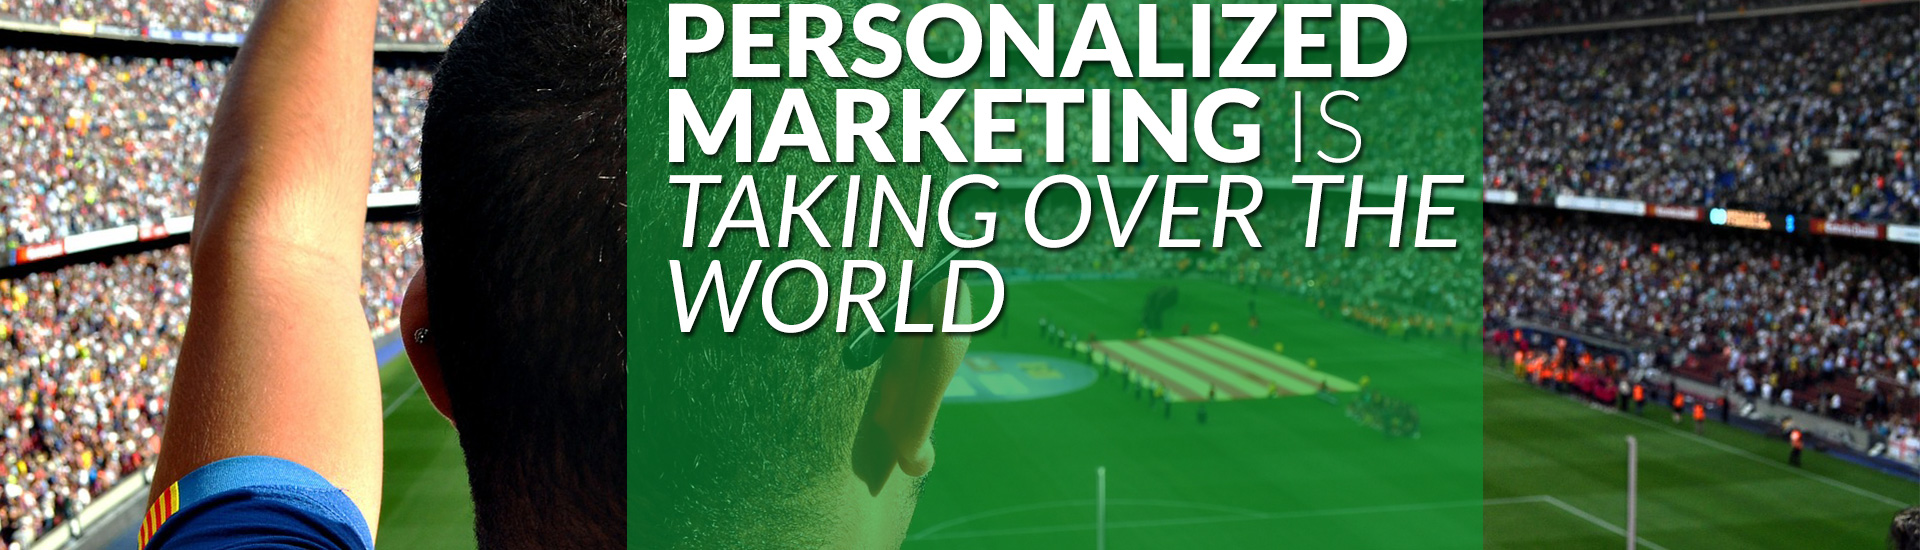 How personalized marketing is taking over the world